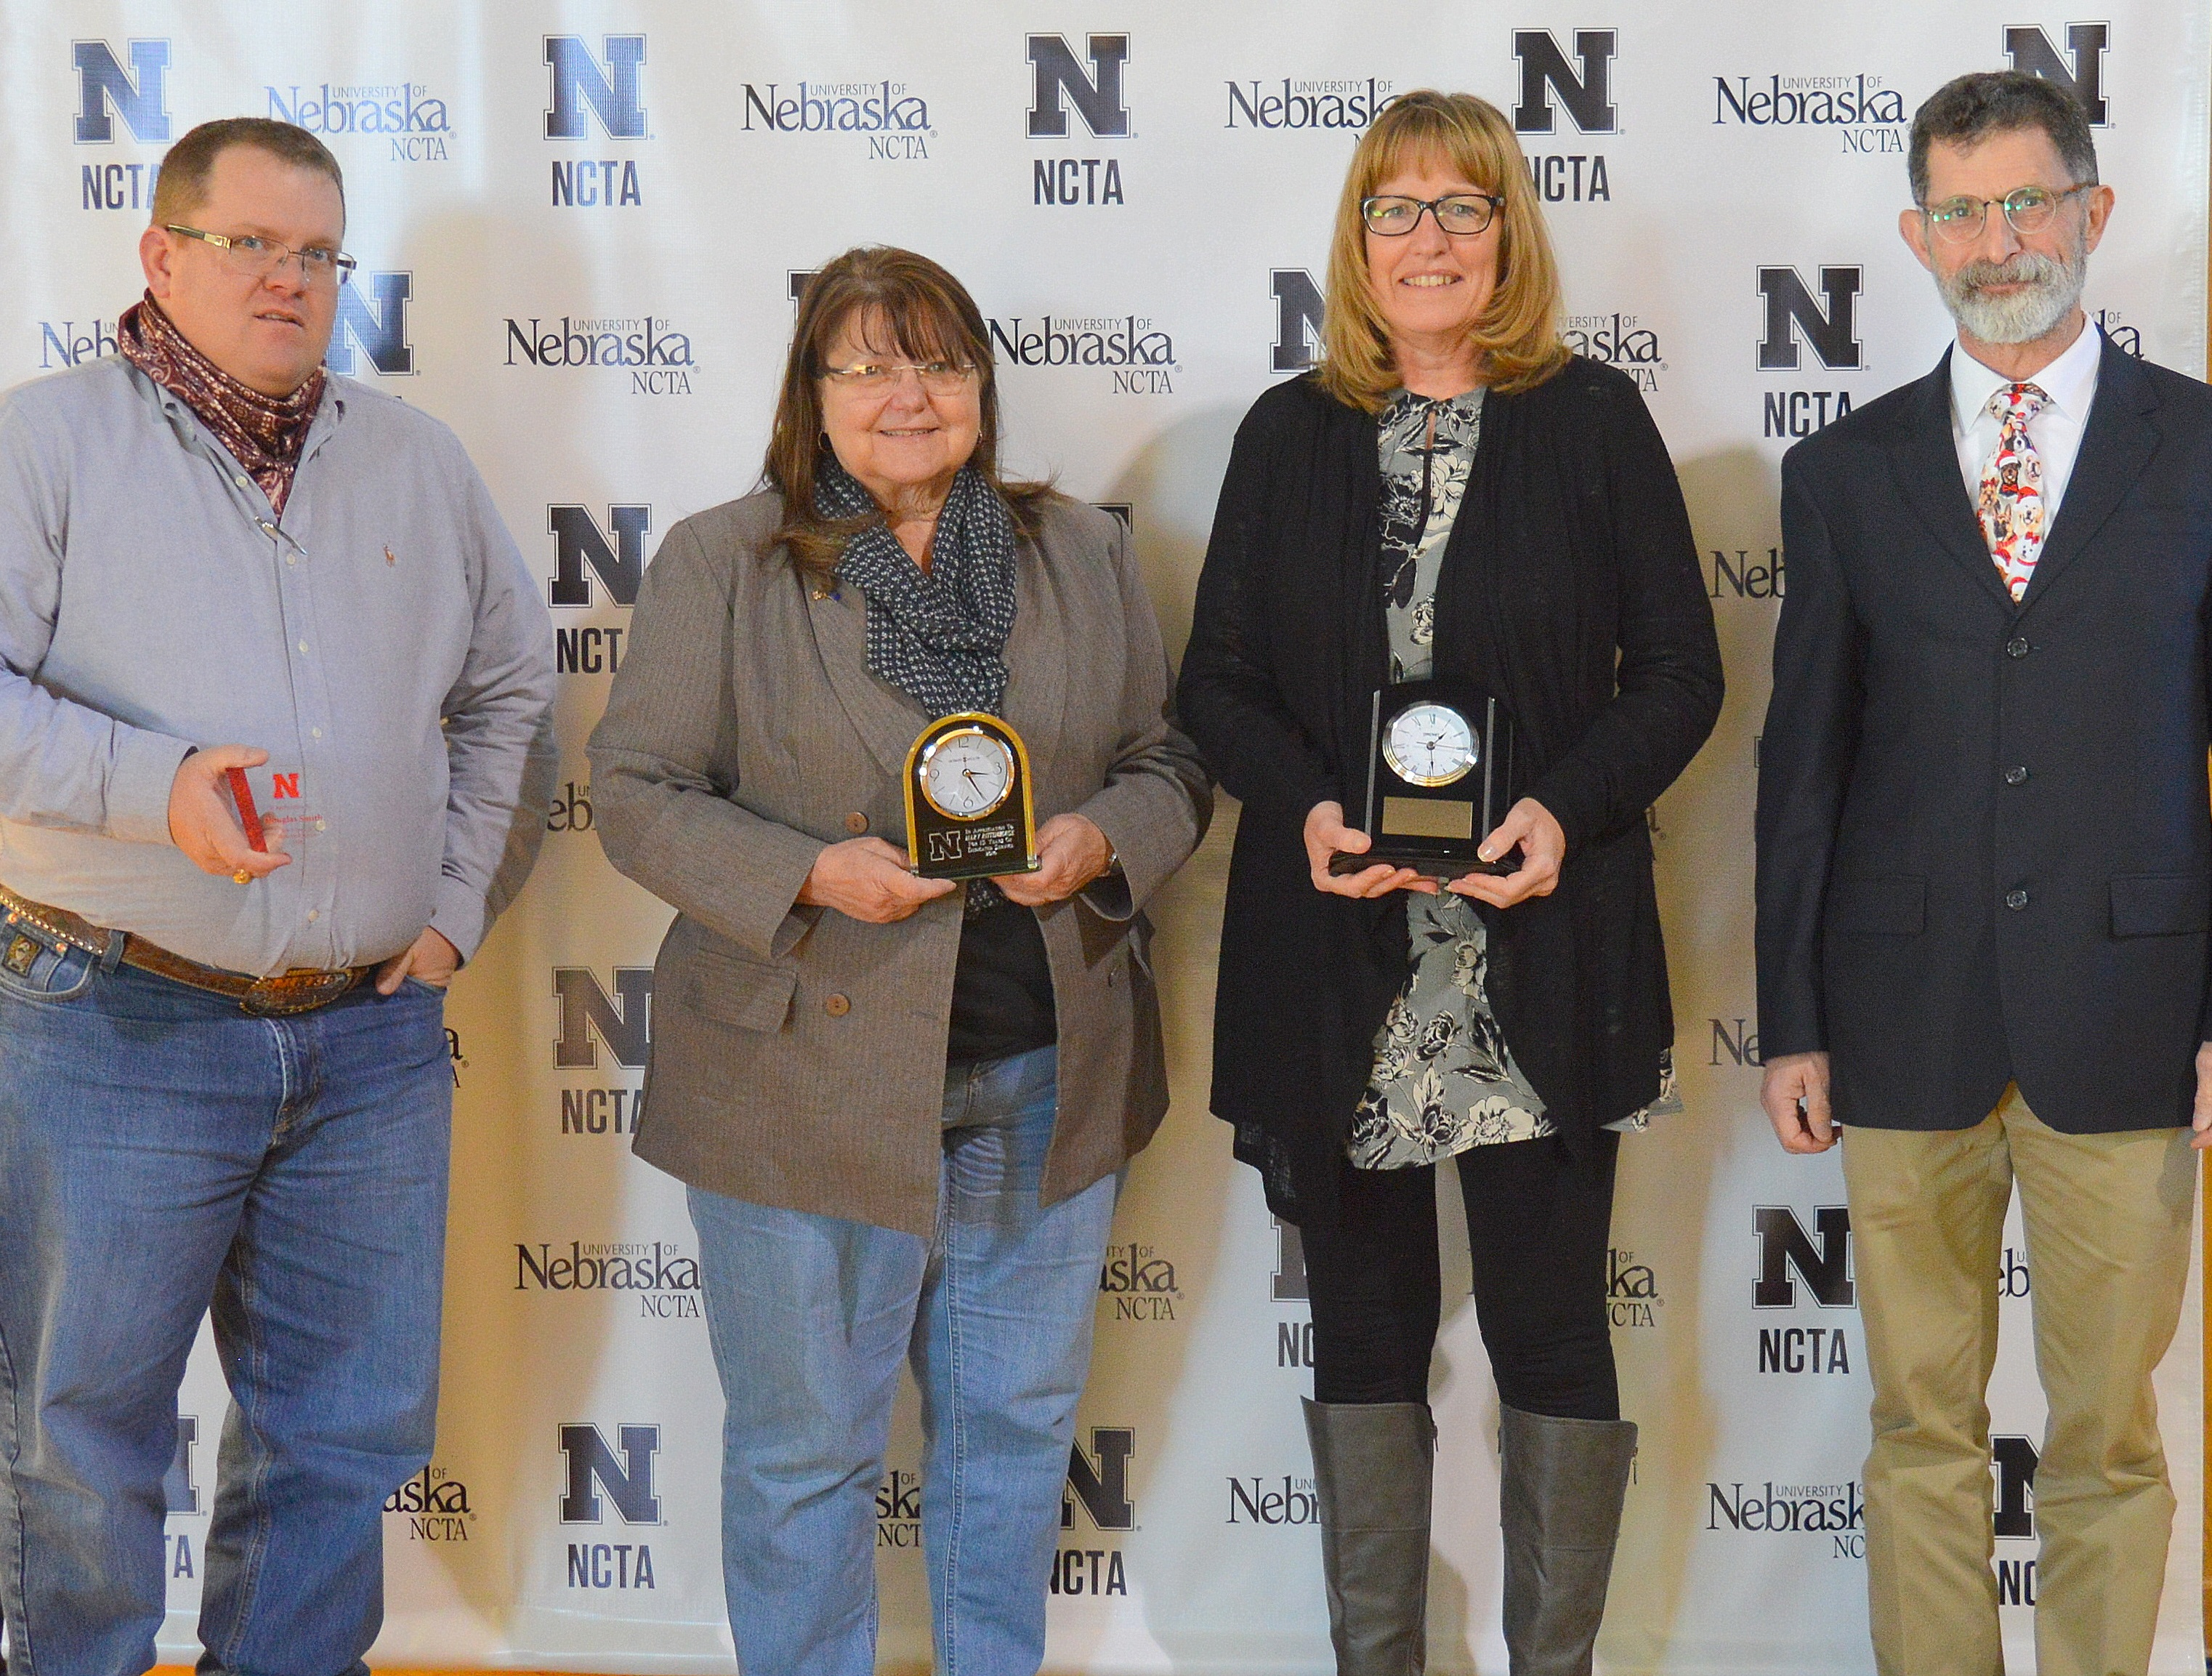 NCTA recognized a combined 40 years of service to the University of Nebraska by employees (from left) Dr. Doug Smith, 5 years; Mary Rittenhouse, 15 years; and Linda Cole, 20 years, with NCTA Dean Ron Rosati. (Hauptman/NCTA Photo)